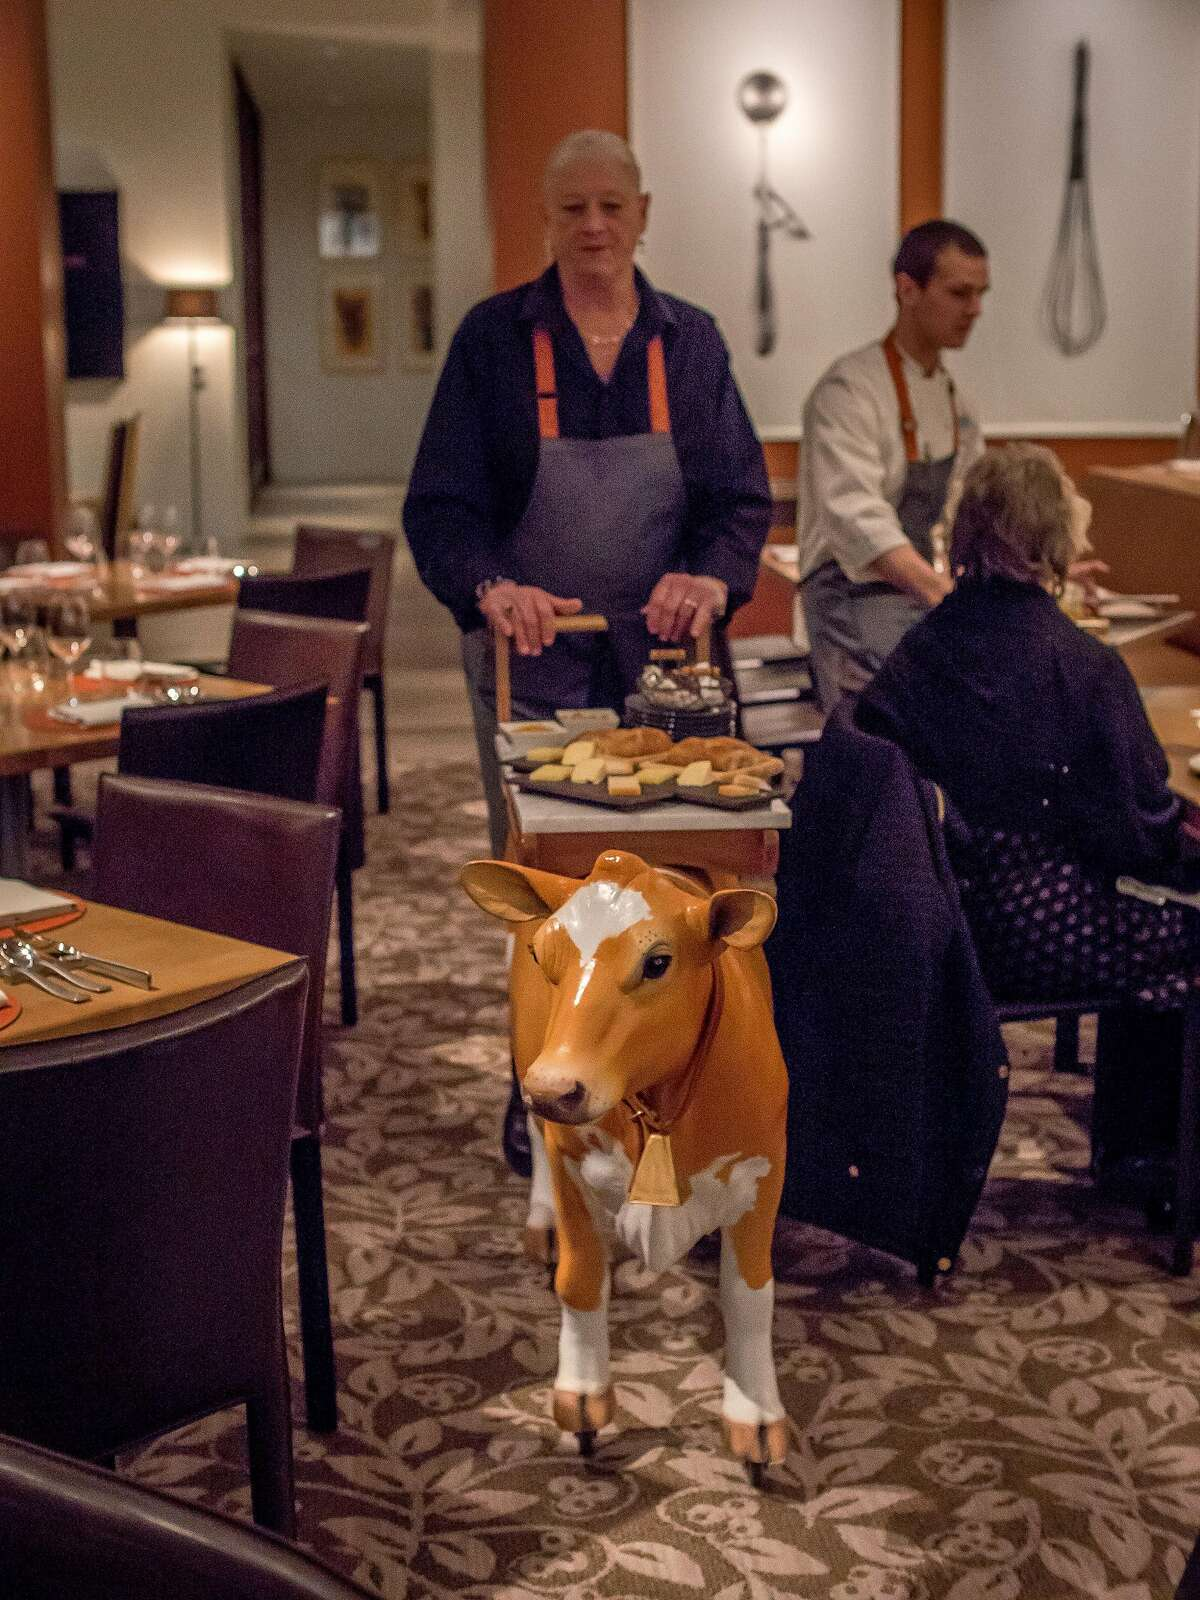 Server Lillian Wiggins rolls around Bessie the Cheese Cart at CIA at Copia in Napa, Calif. on February 23rd, 2017.